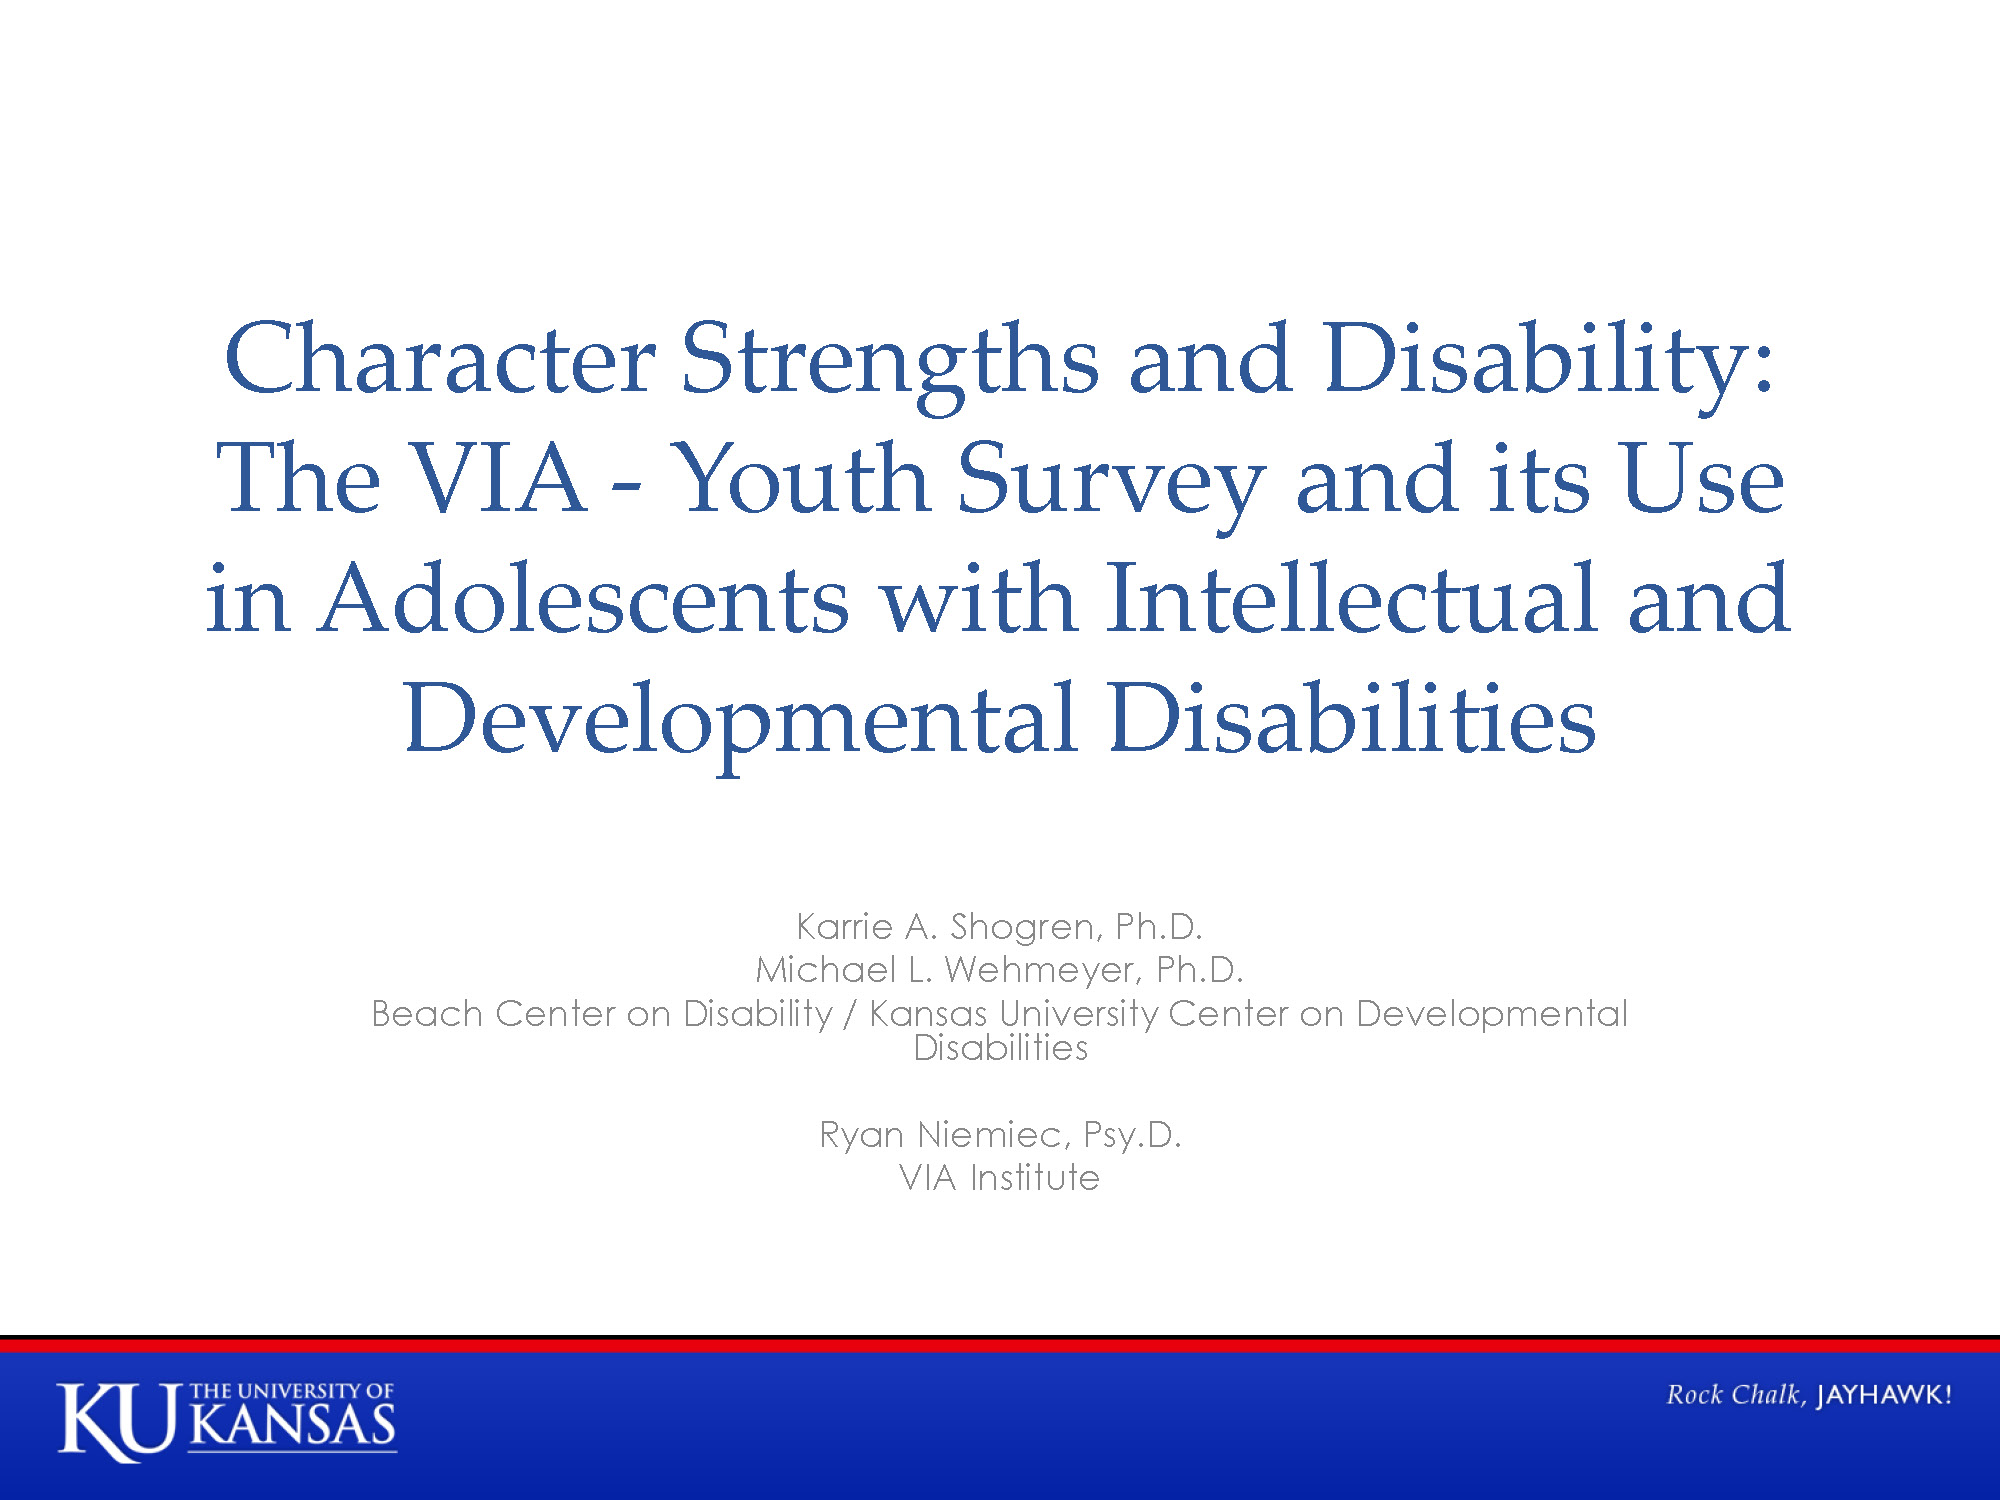 international positive psychology association ips 7 1 hope sy 23 4 character strengths and disability the via youth survey and its use in adolescents intellectual and developmental disabilities shogren